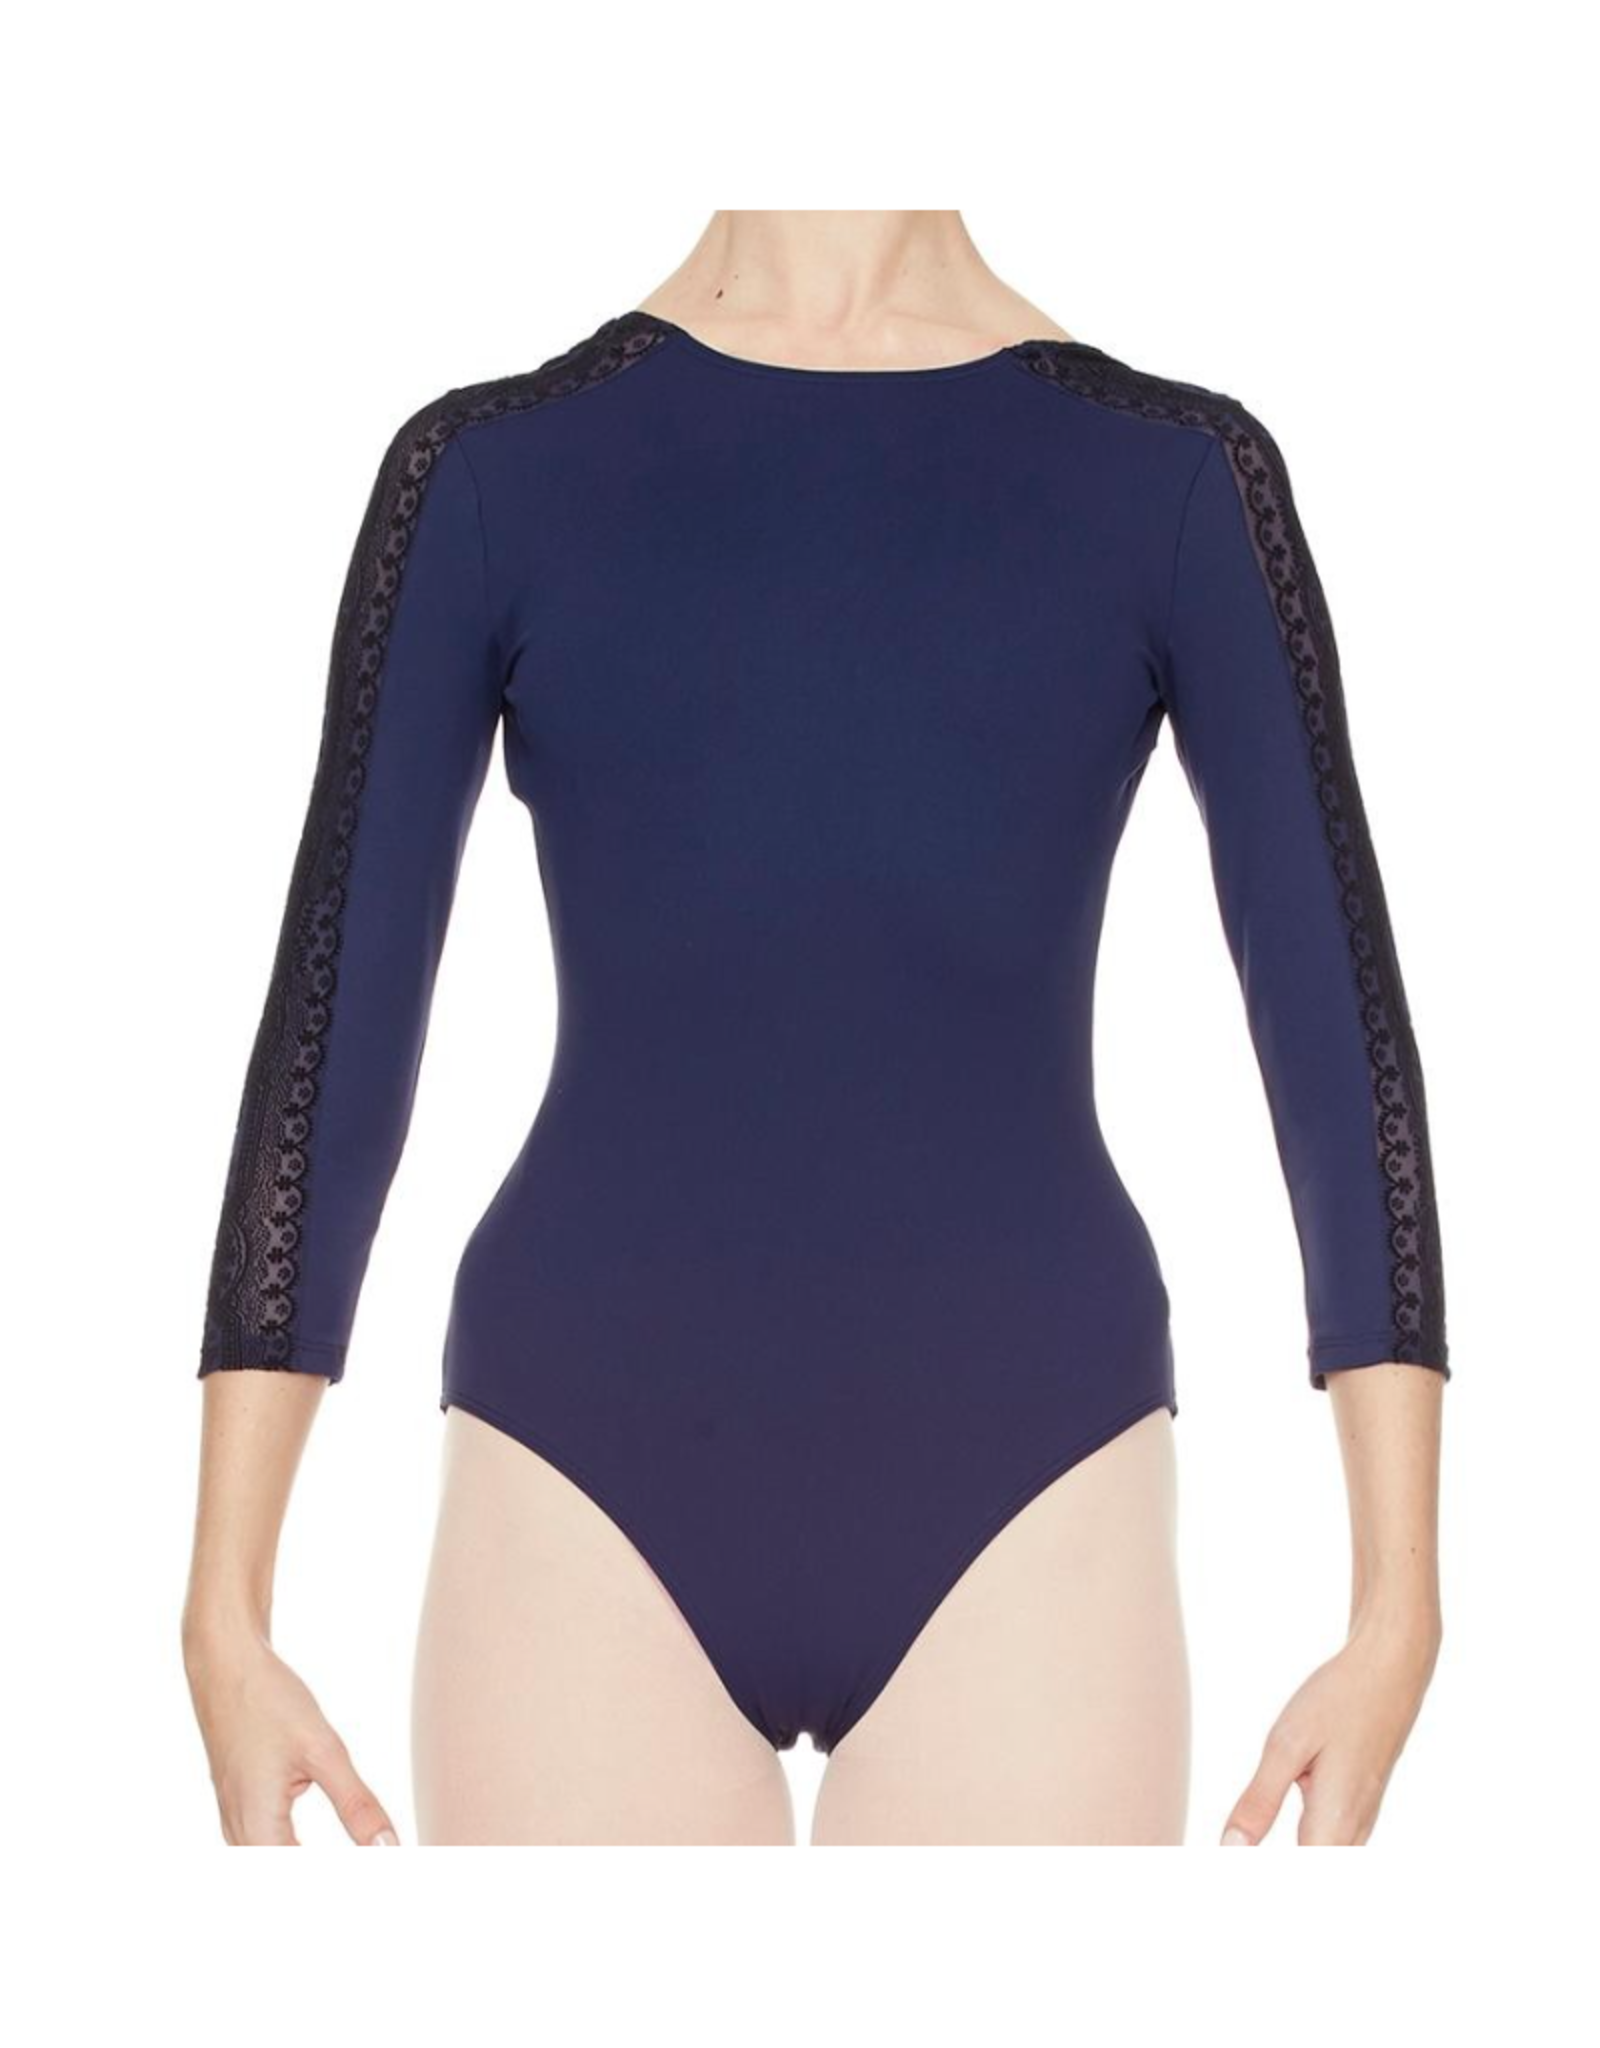 INTERMEZZO 3/4 SLEEVE LEOTARD